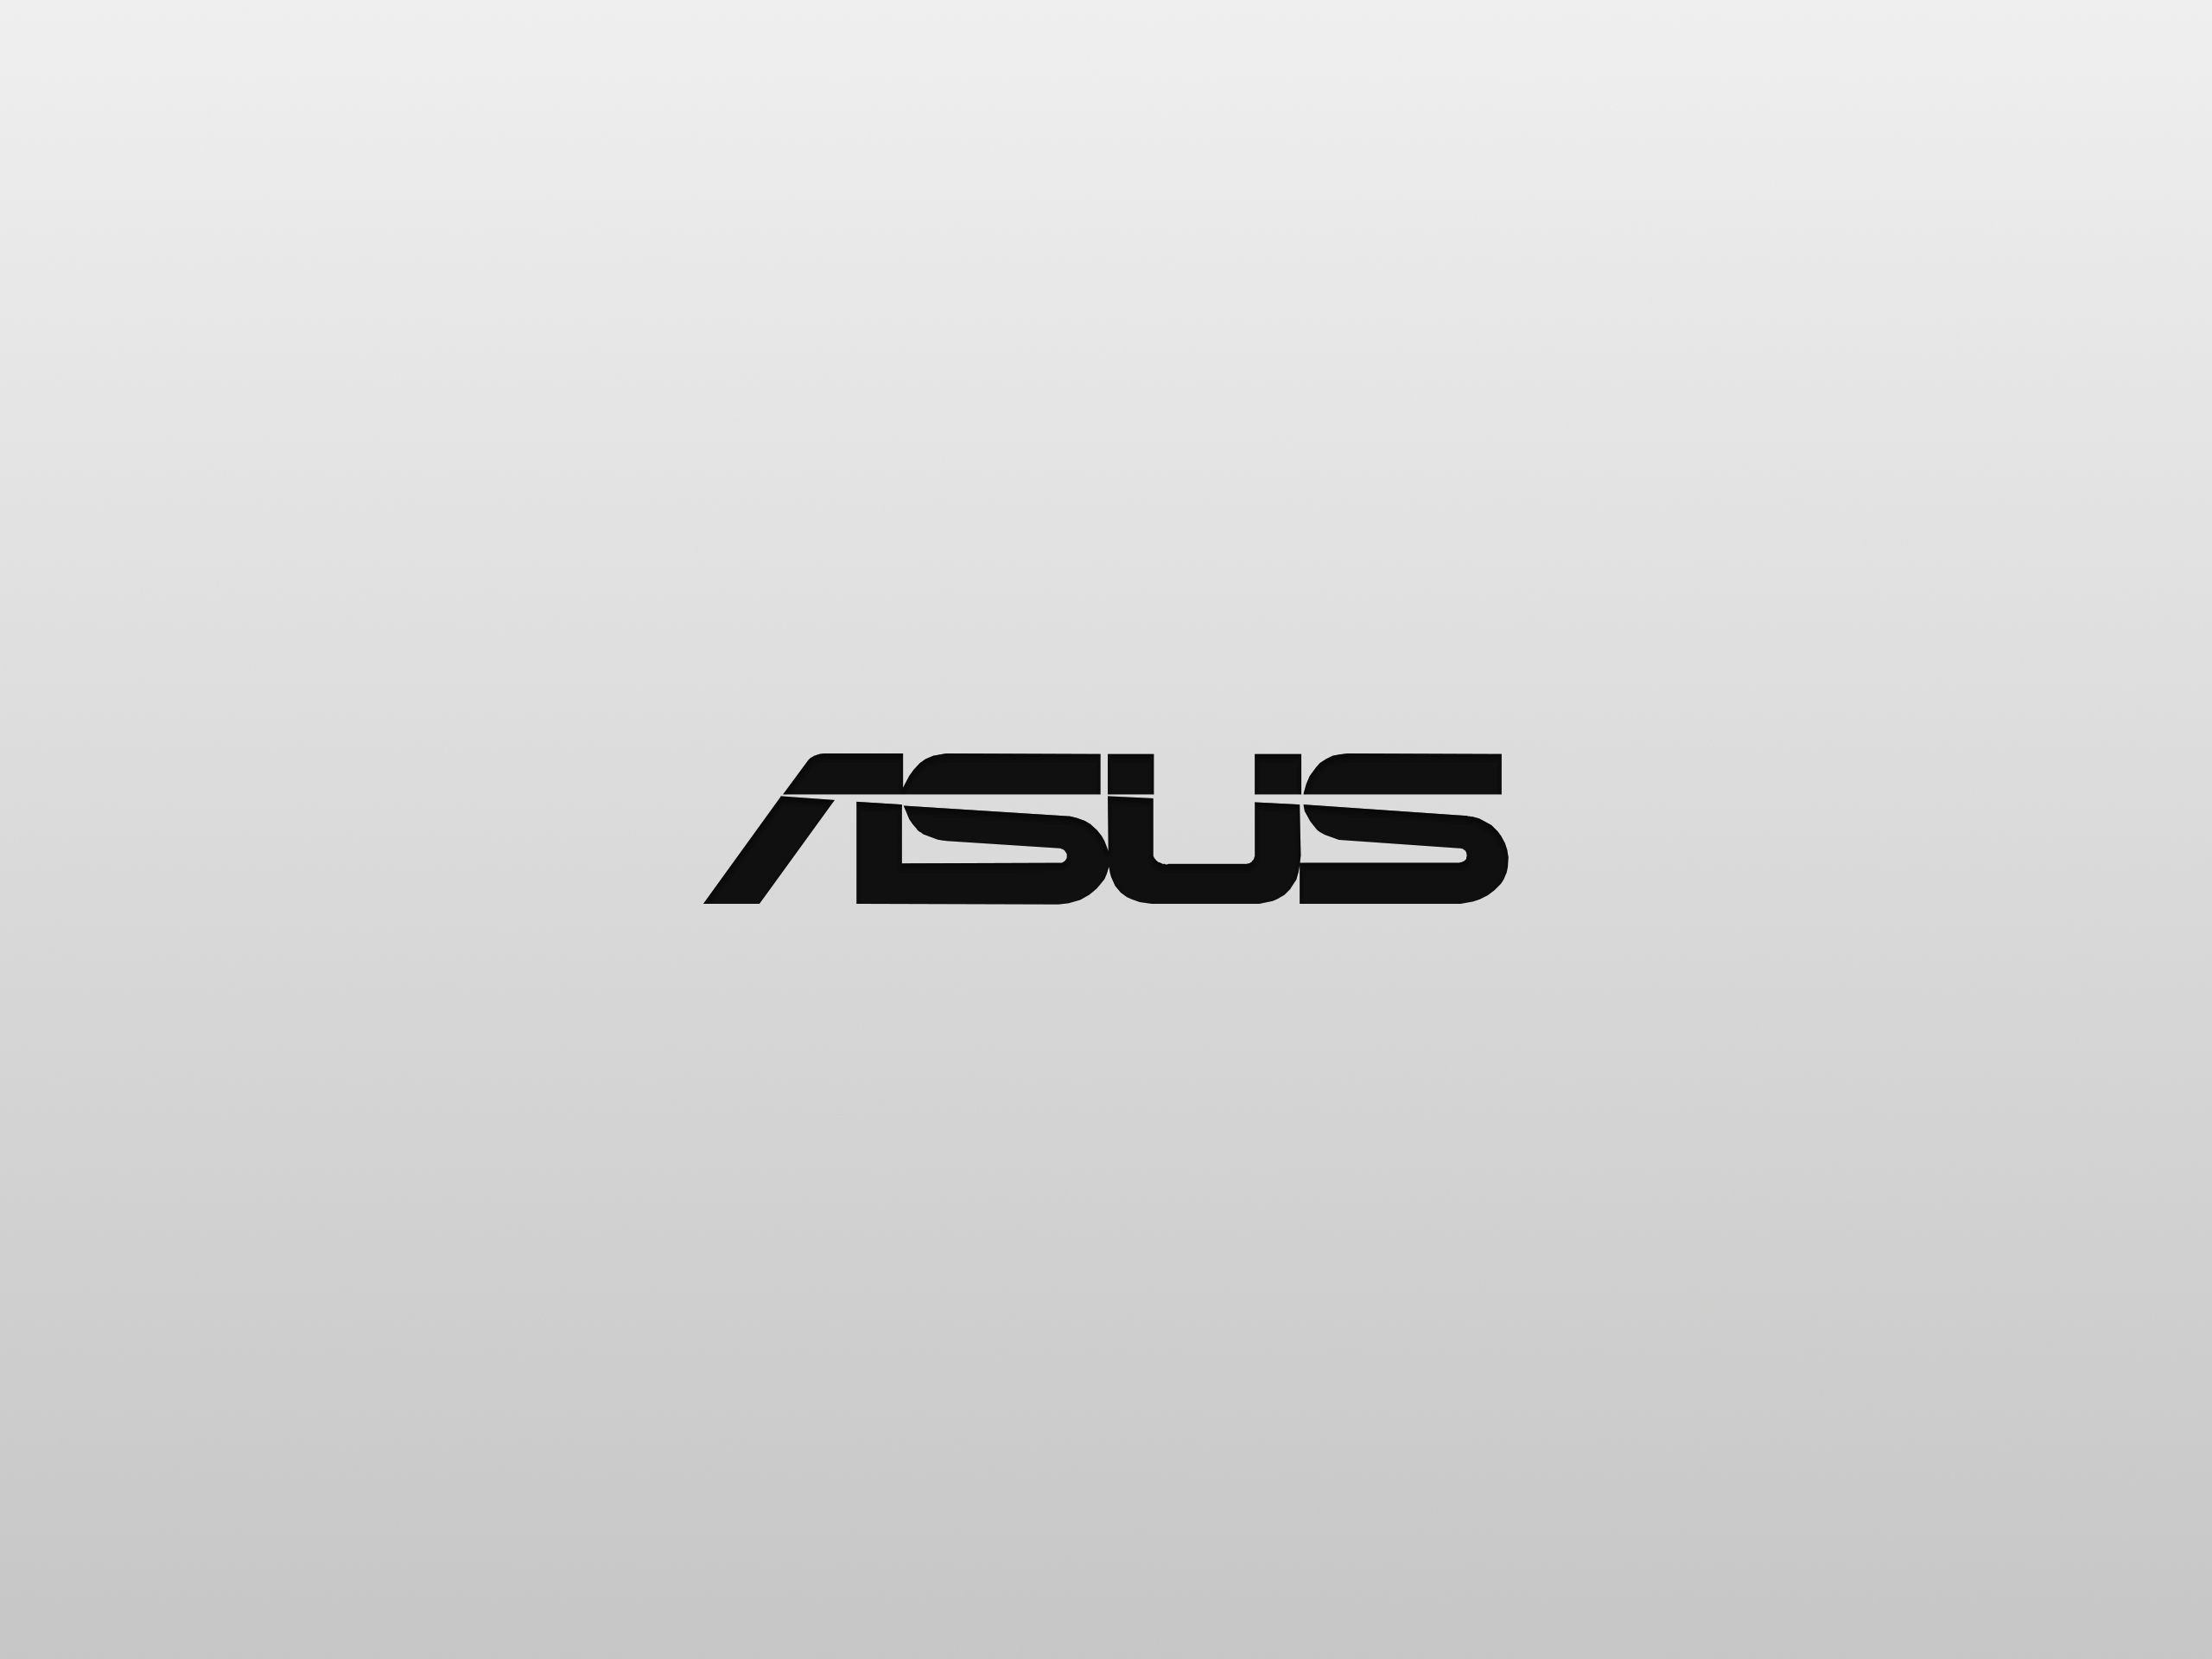 Asus Logo Wallpapers 2560x1920